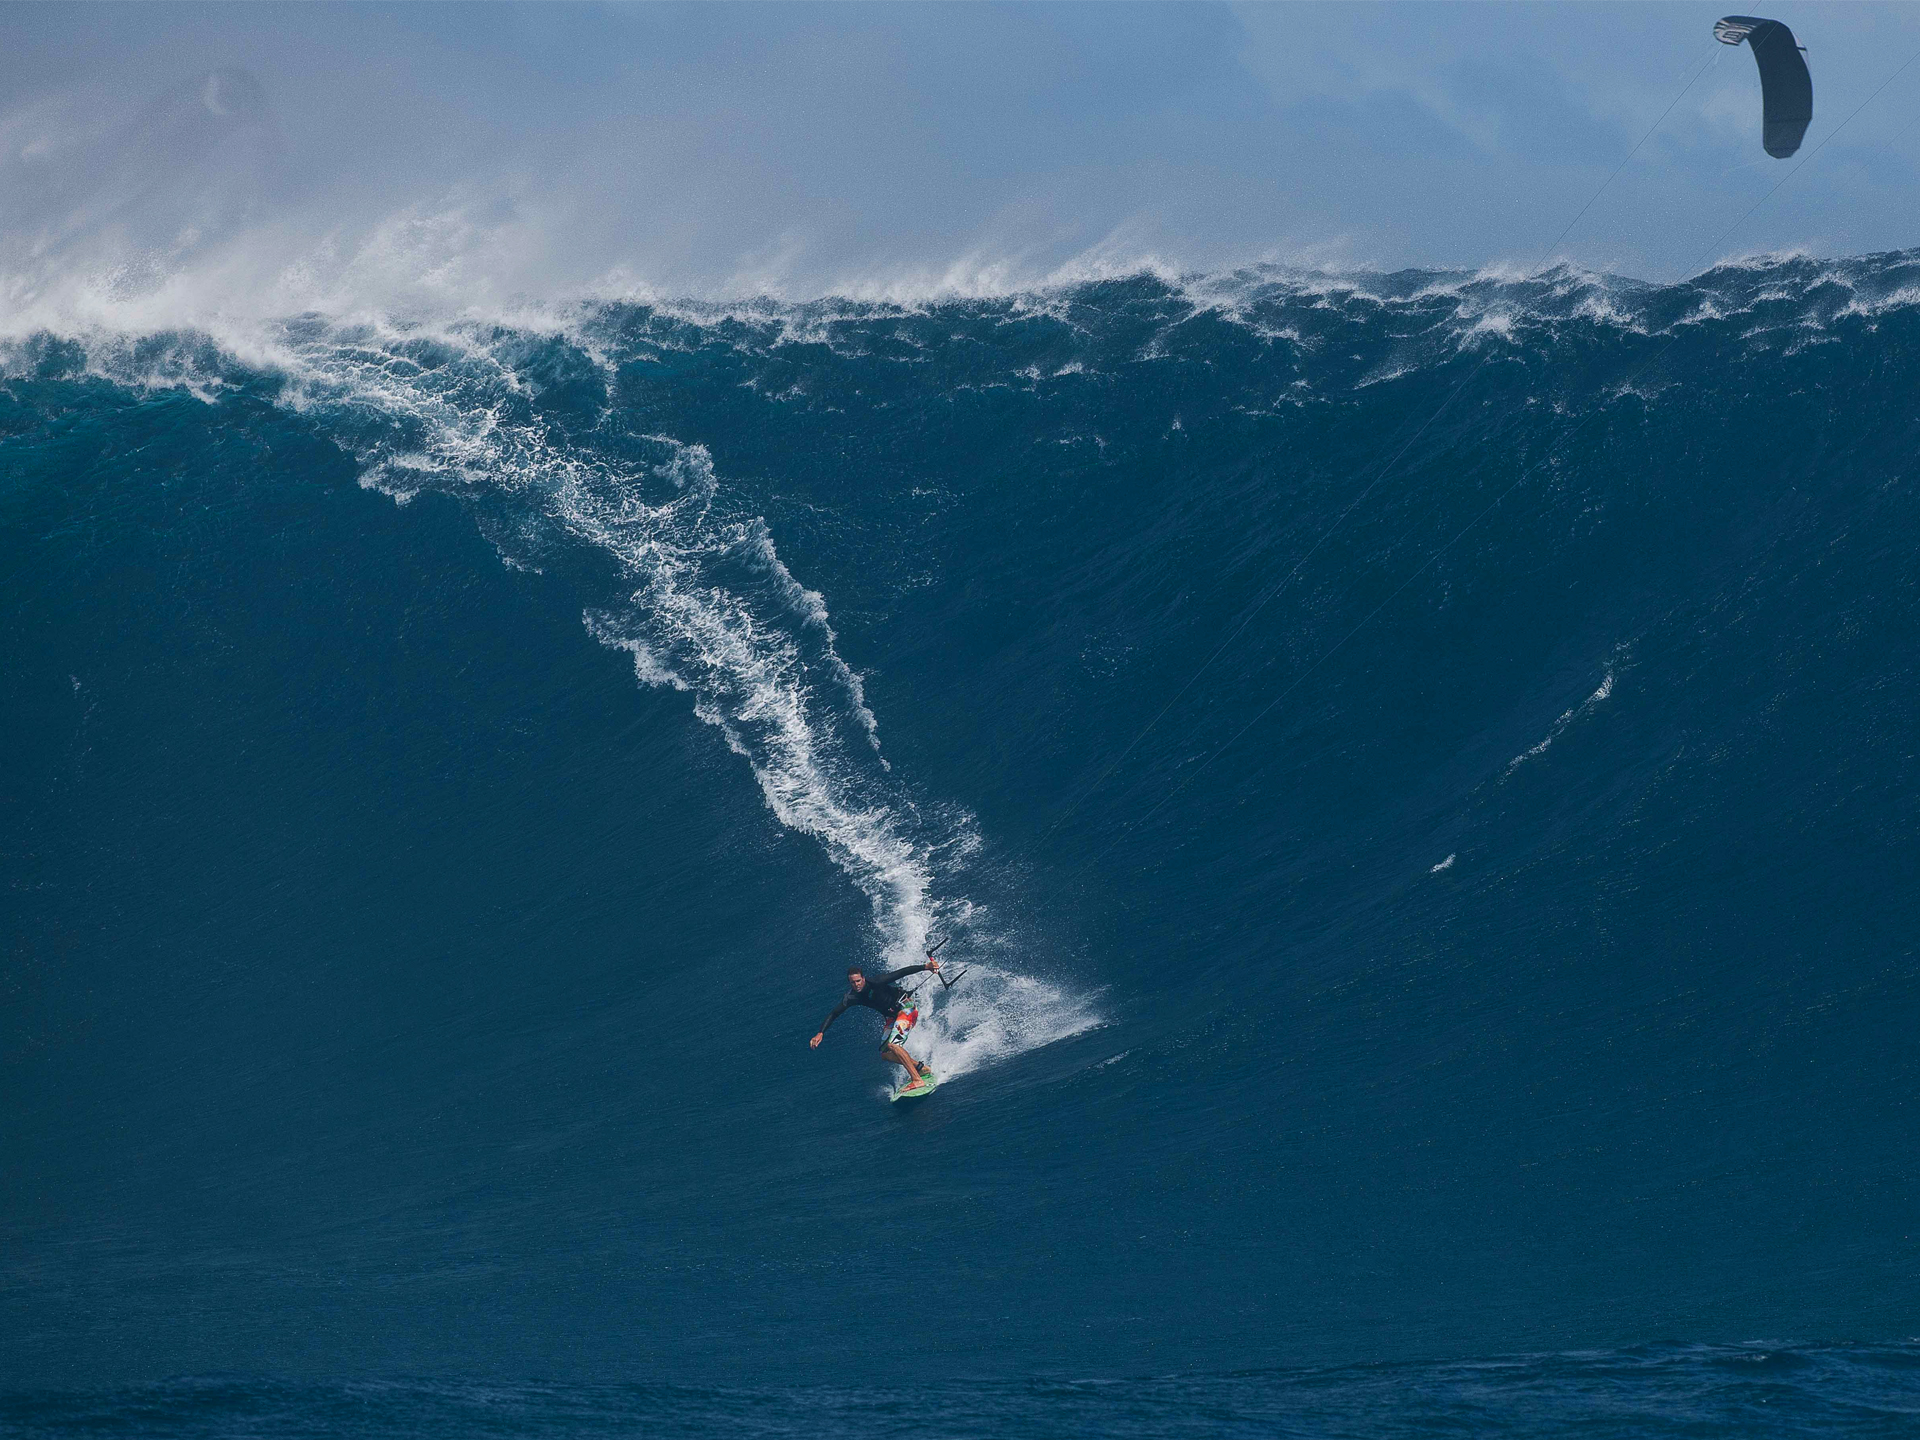 kitesurf wallpaper image - Ben Wilson on what must be the biggest wave ever kitesurfed - in resolution: Standard 4:3 1920 X 1440